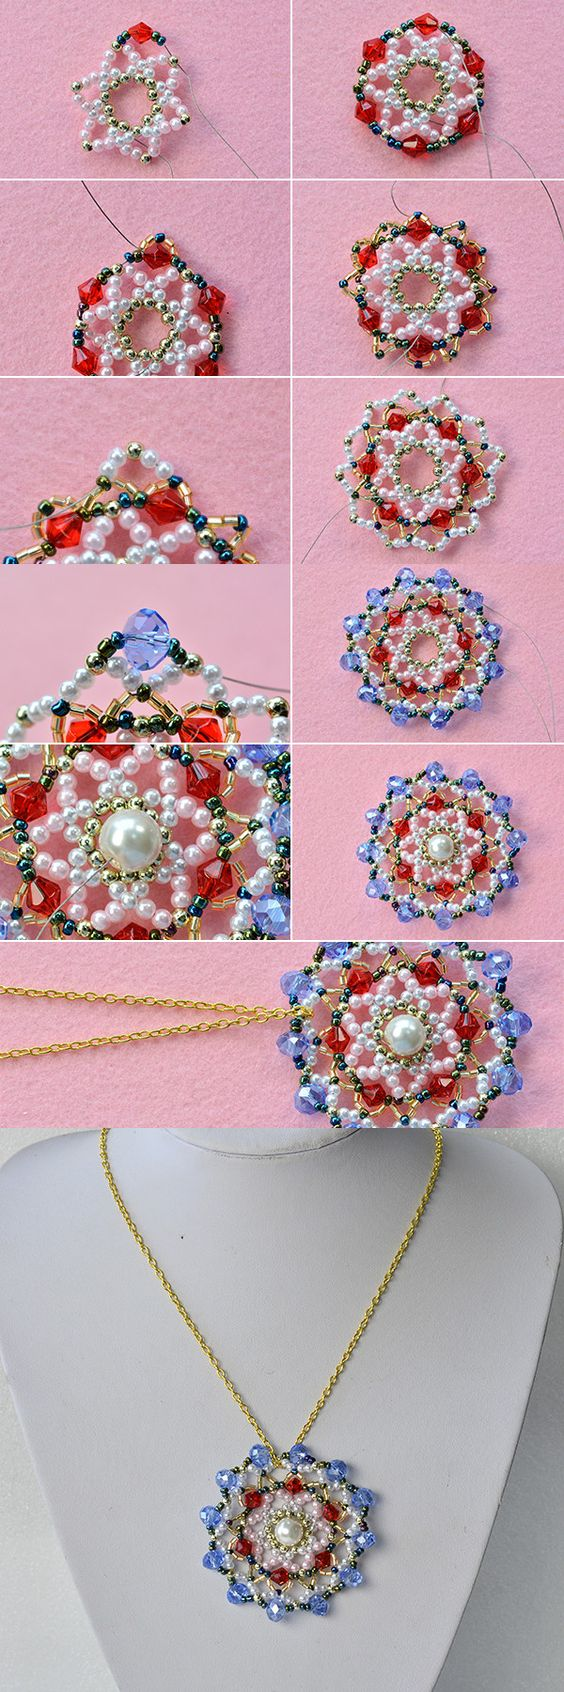 Look at this beaded pendant necklace, like it? LC.Pandahall.com will release the tutorial soon, pay more attention~: